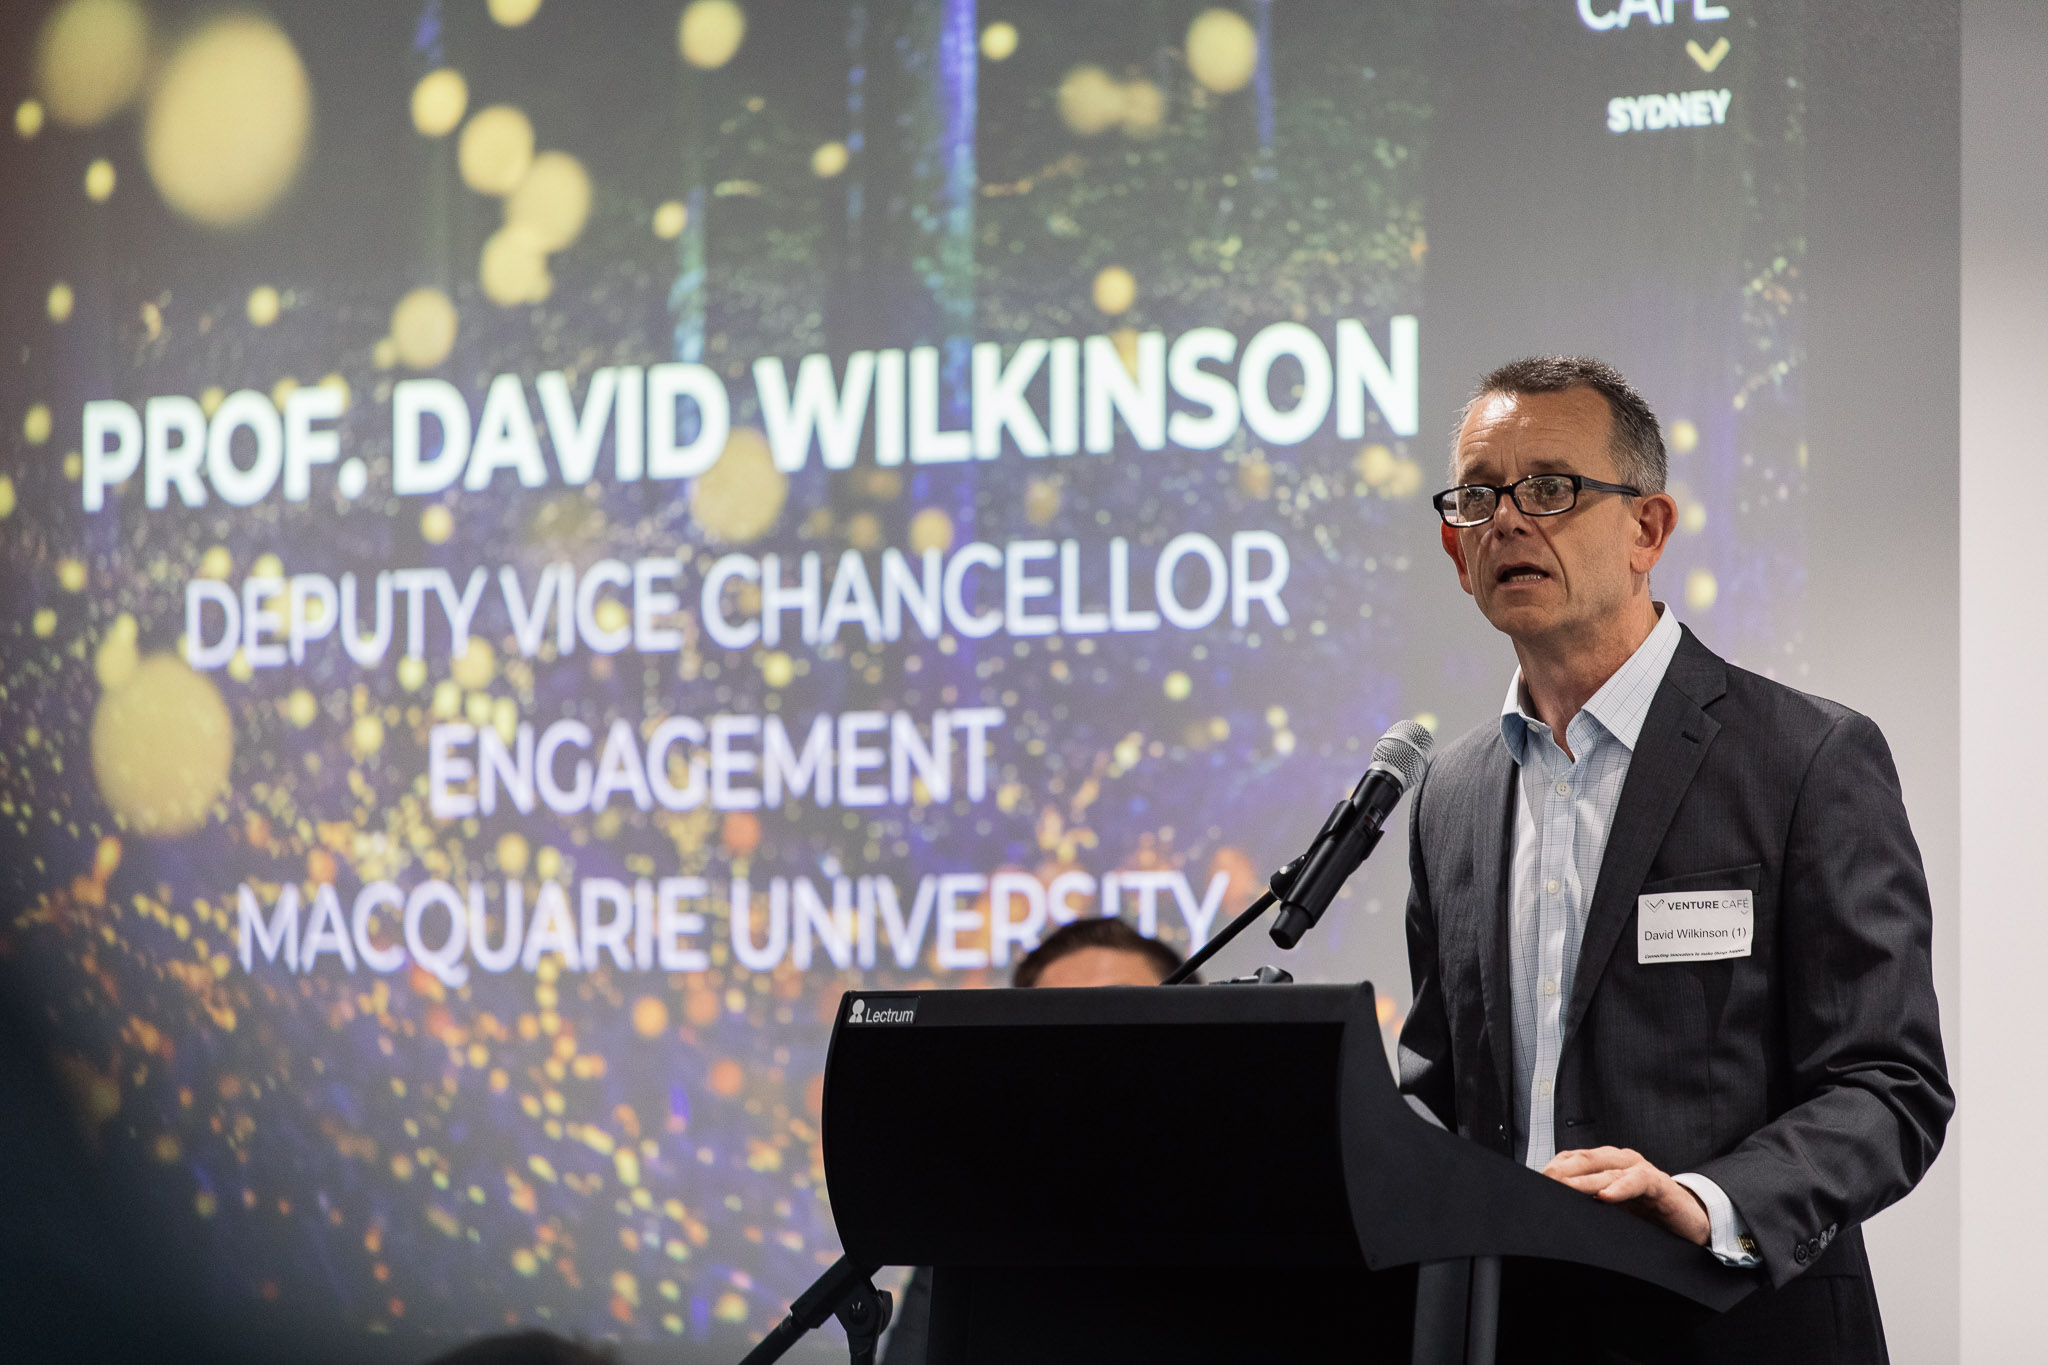 Professor David Wilkinson, Deputy Vice-Chancellor - Engagement at Macquarie University.